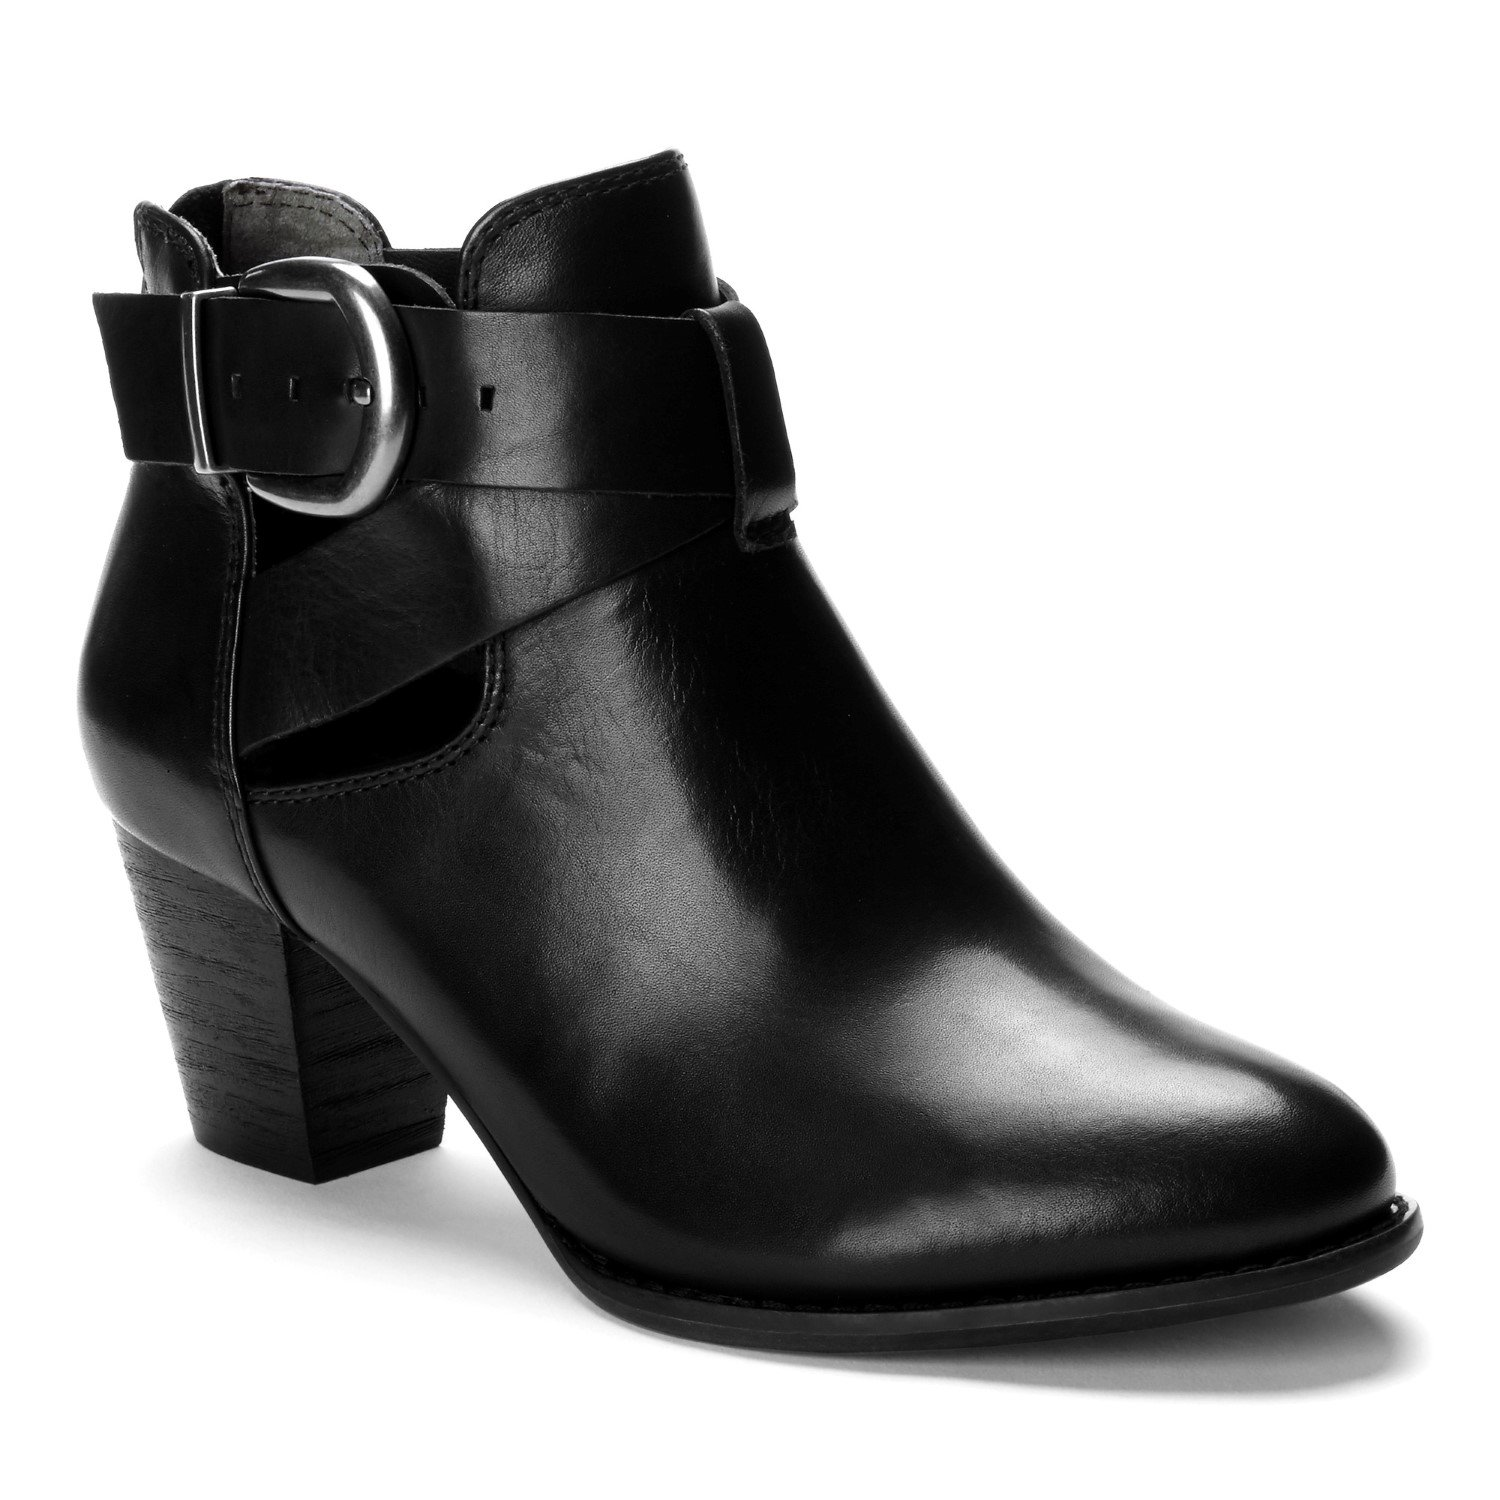 Vionic Upright Rory - Womens Heeled Boot Black - 8 Wide